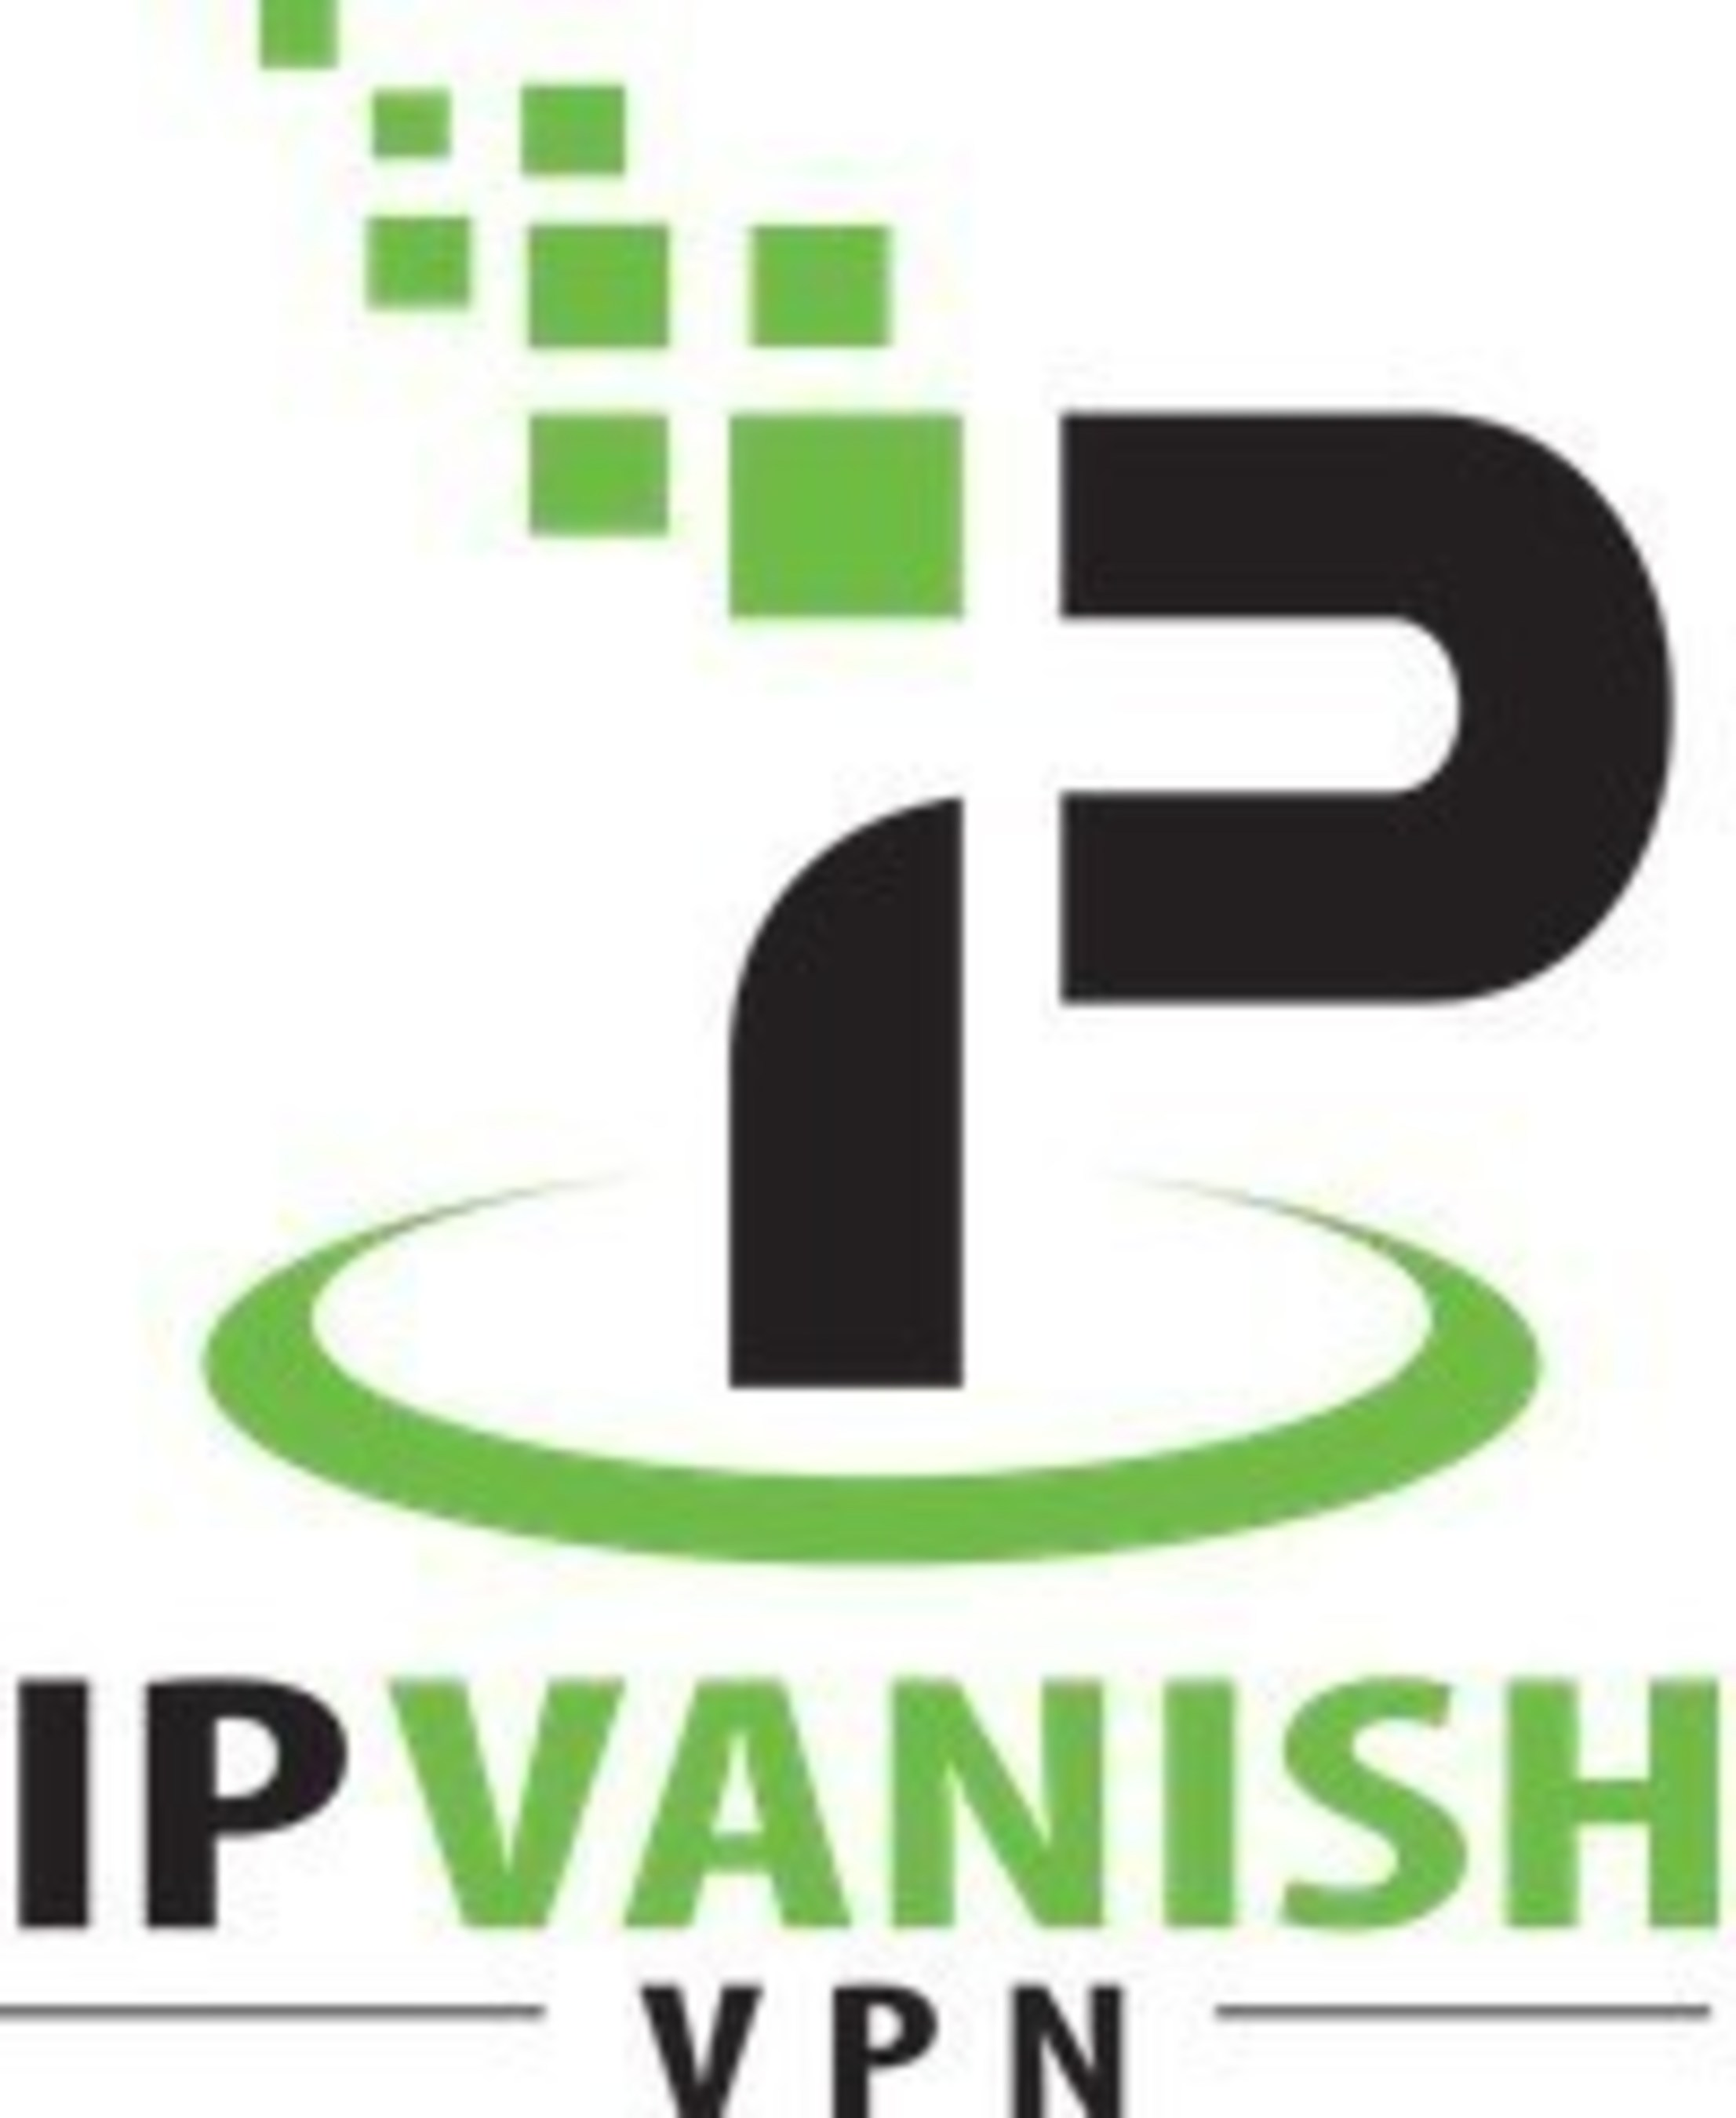 IPVanish VPN Unveils #StandUpForSecurity to Support Apple Encryption